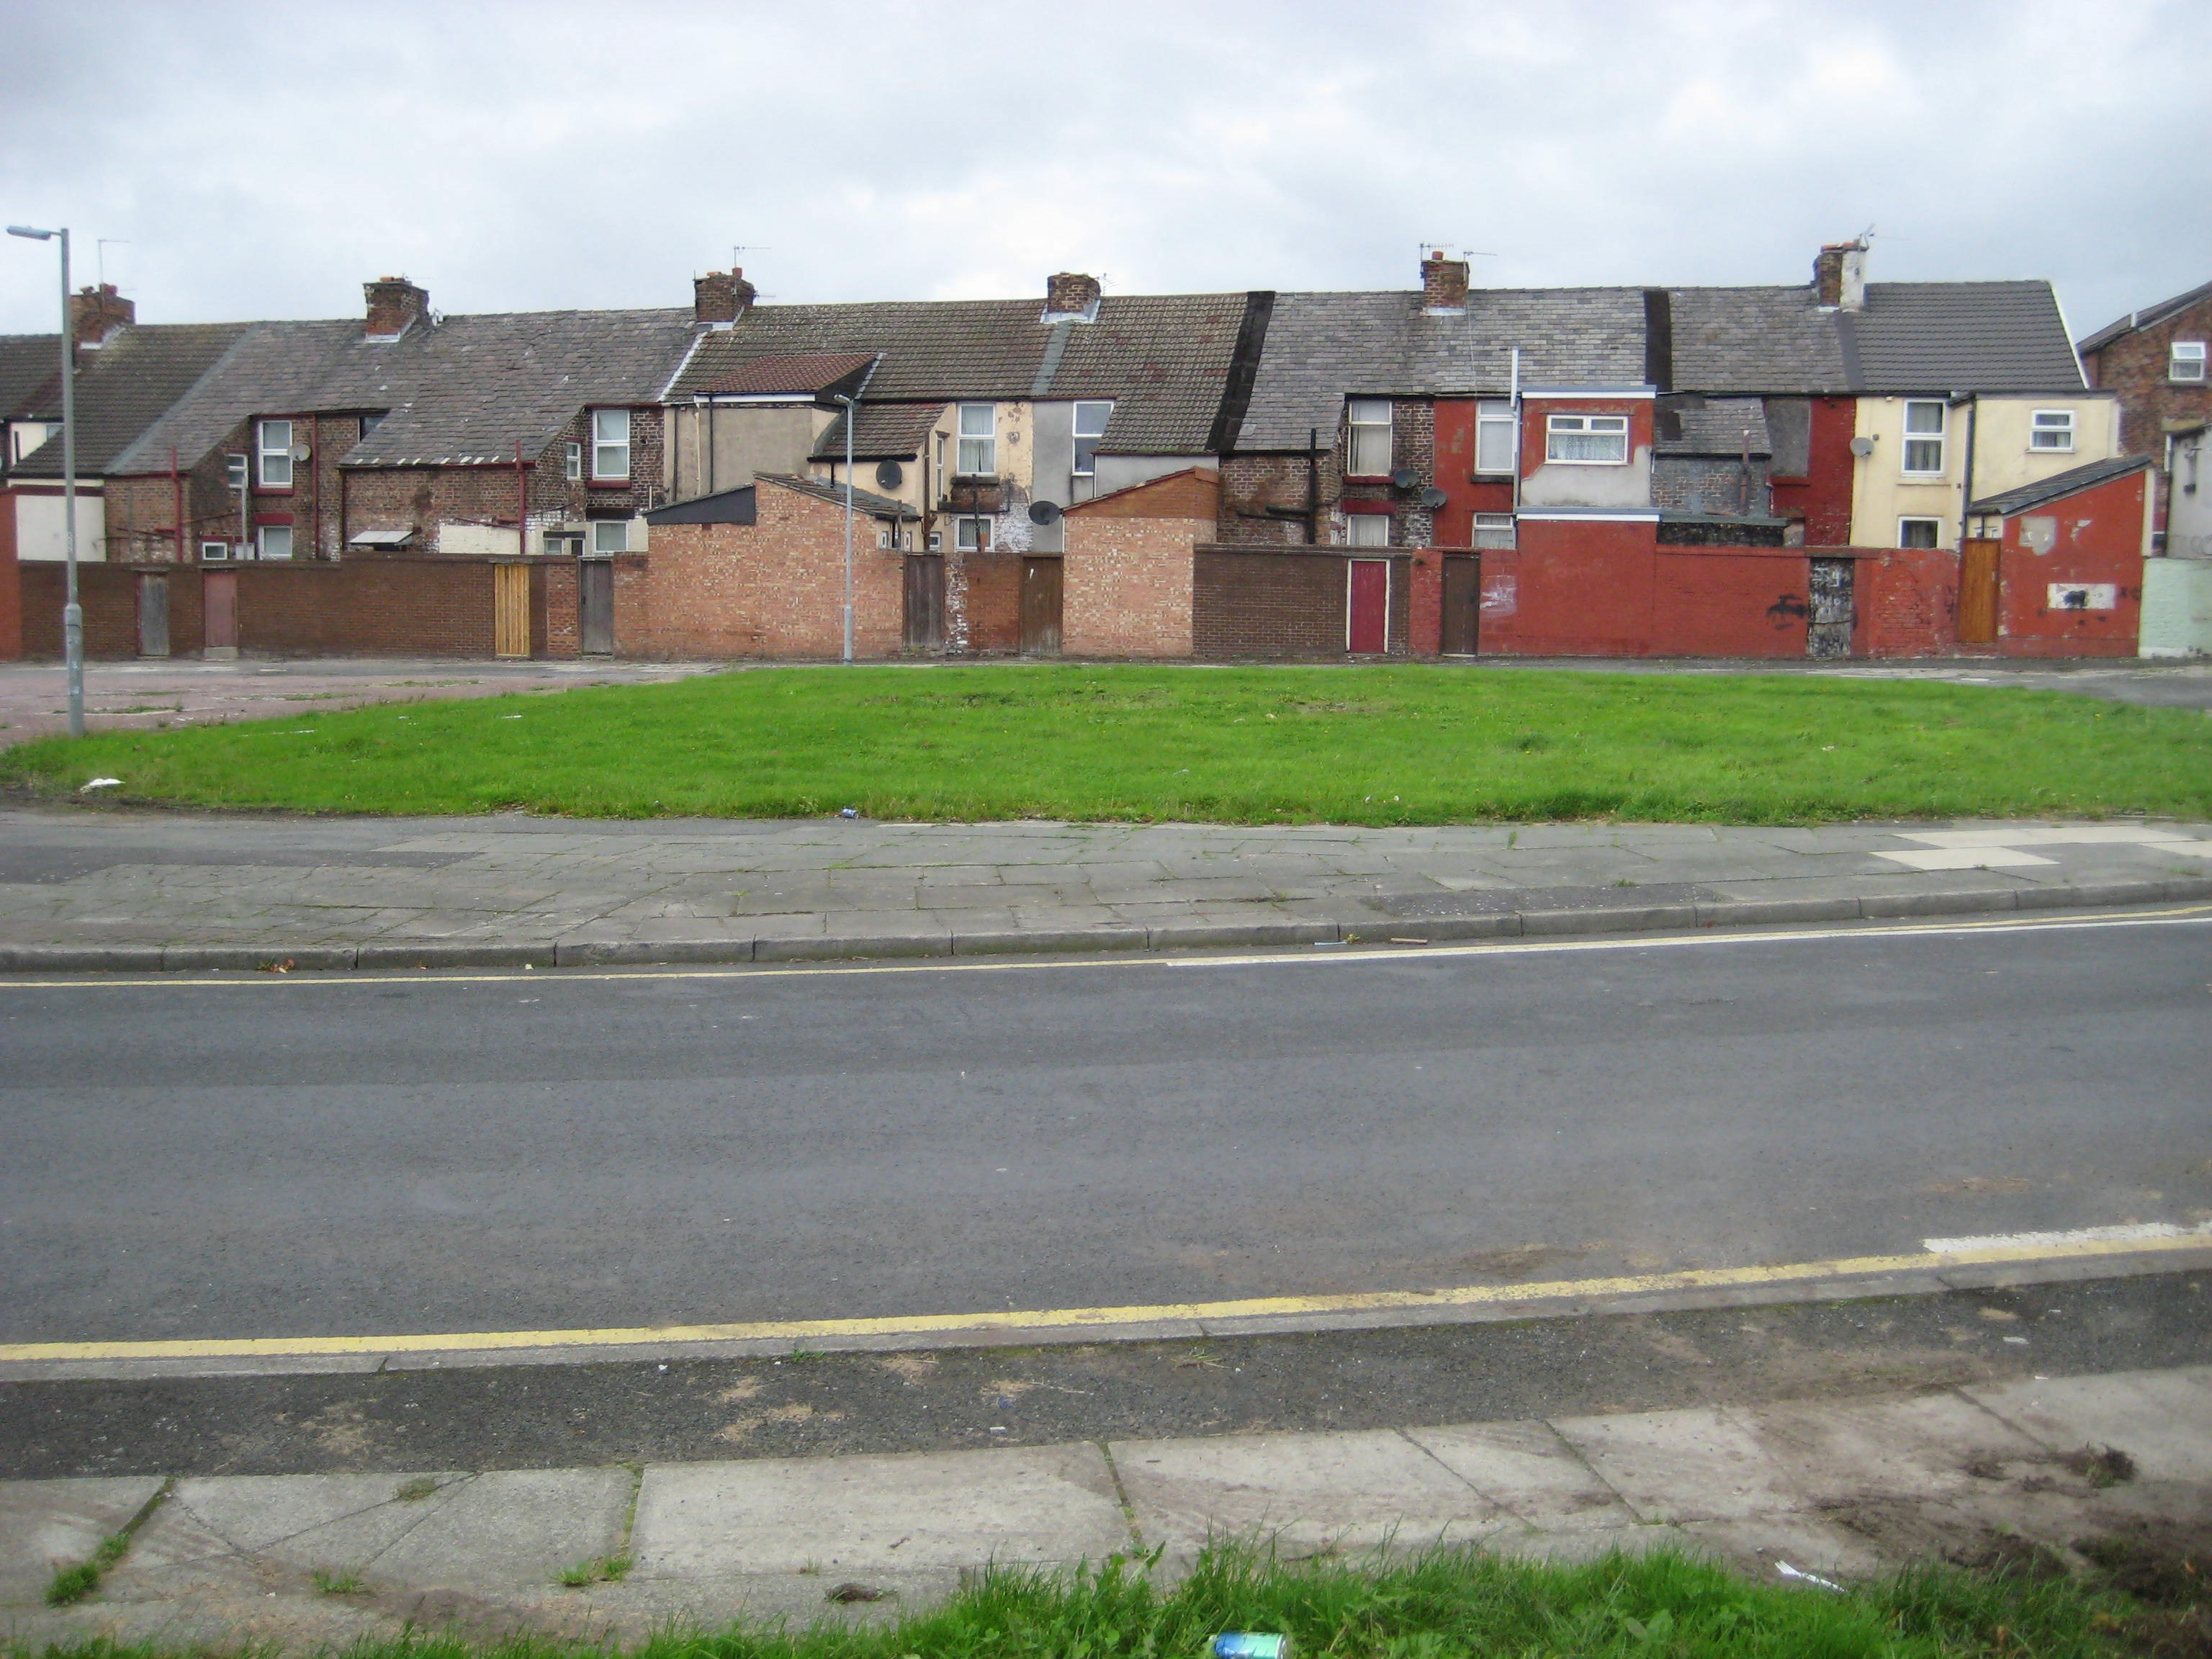 Small Builds Programme - Rosalind Way, Liverpool, L20